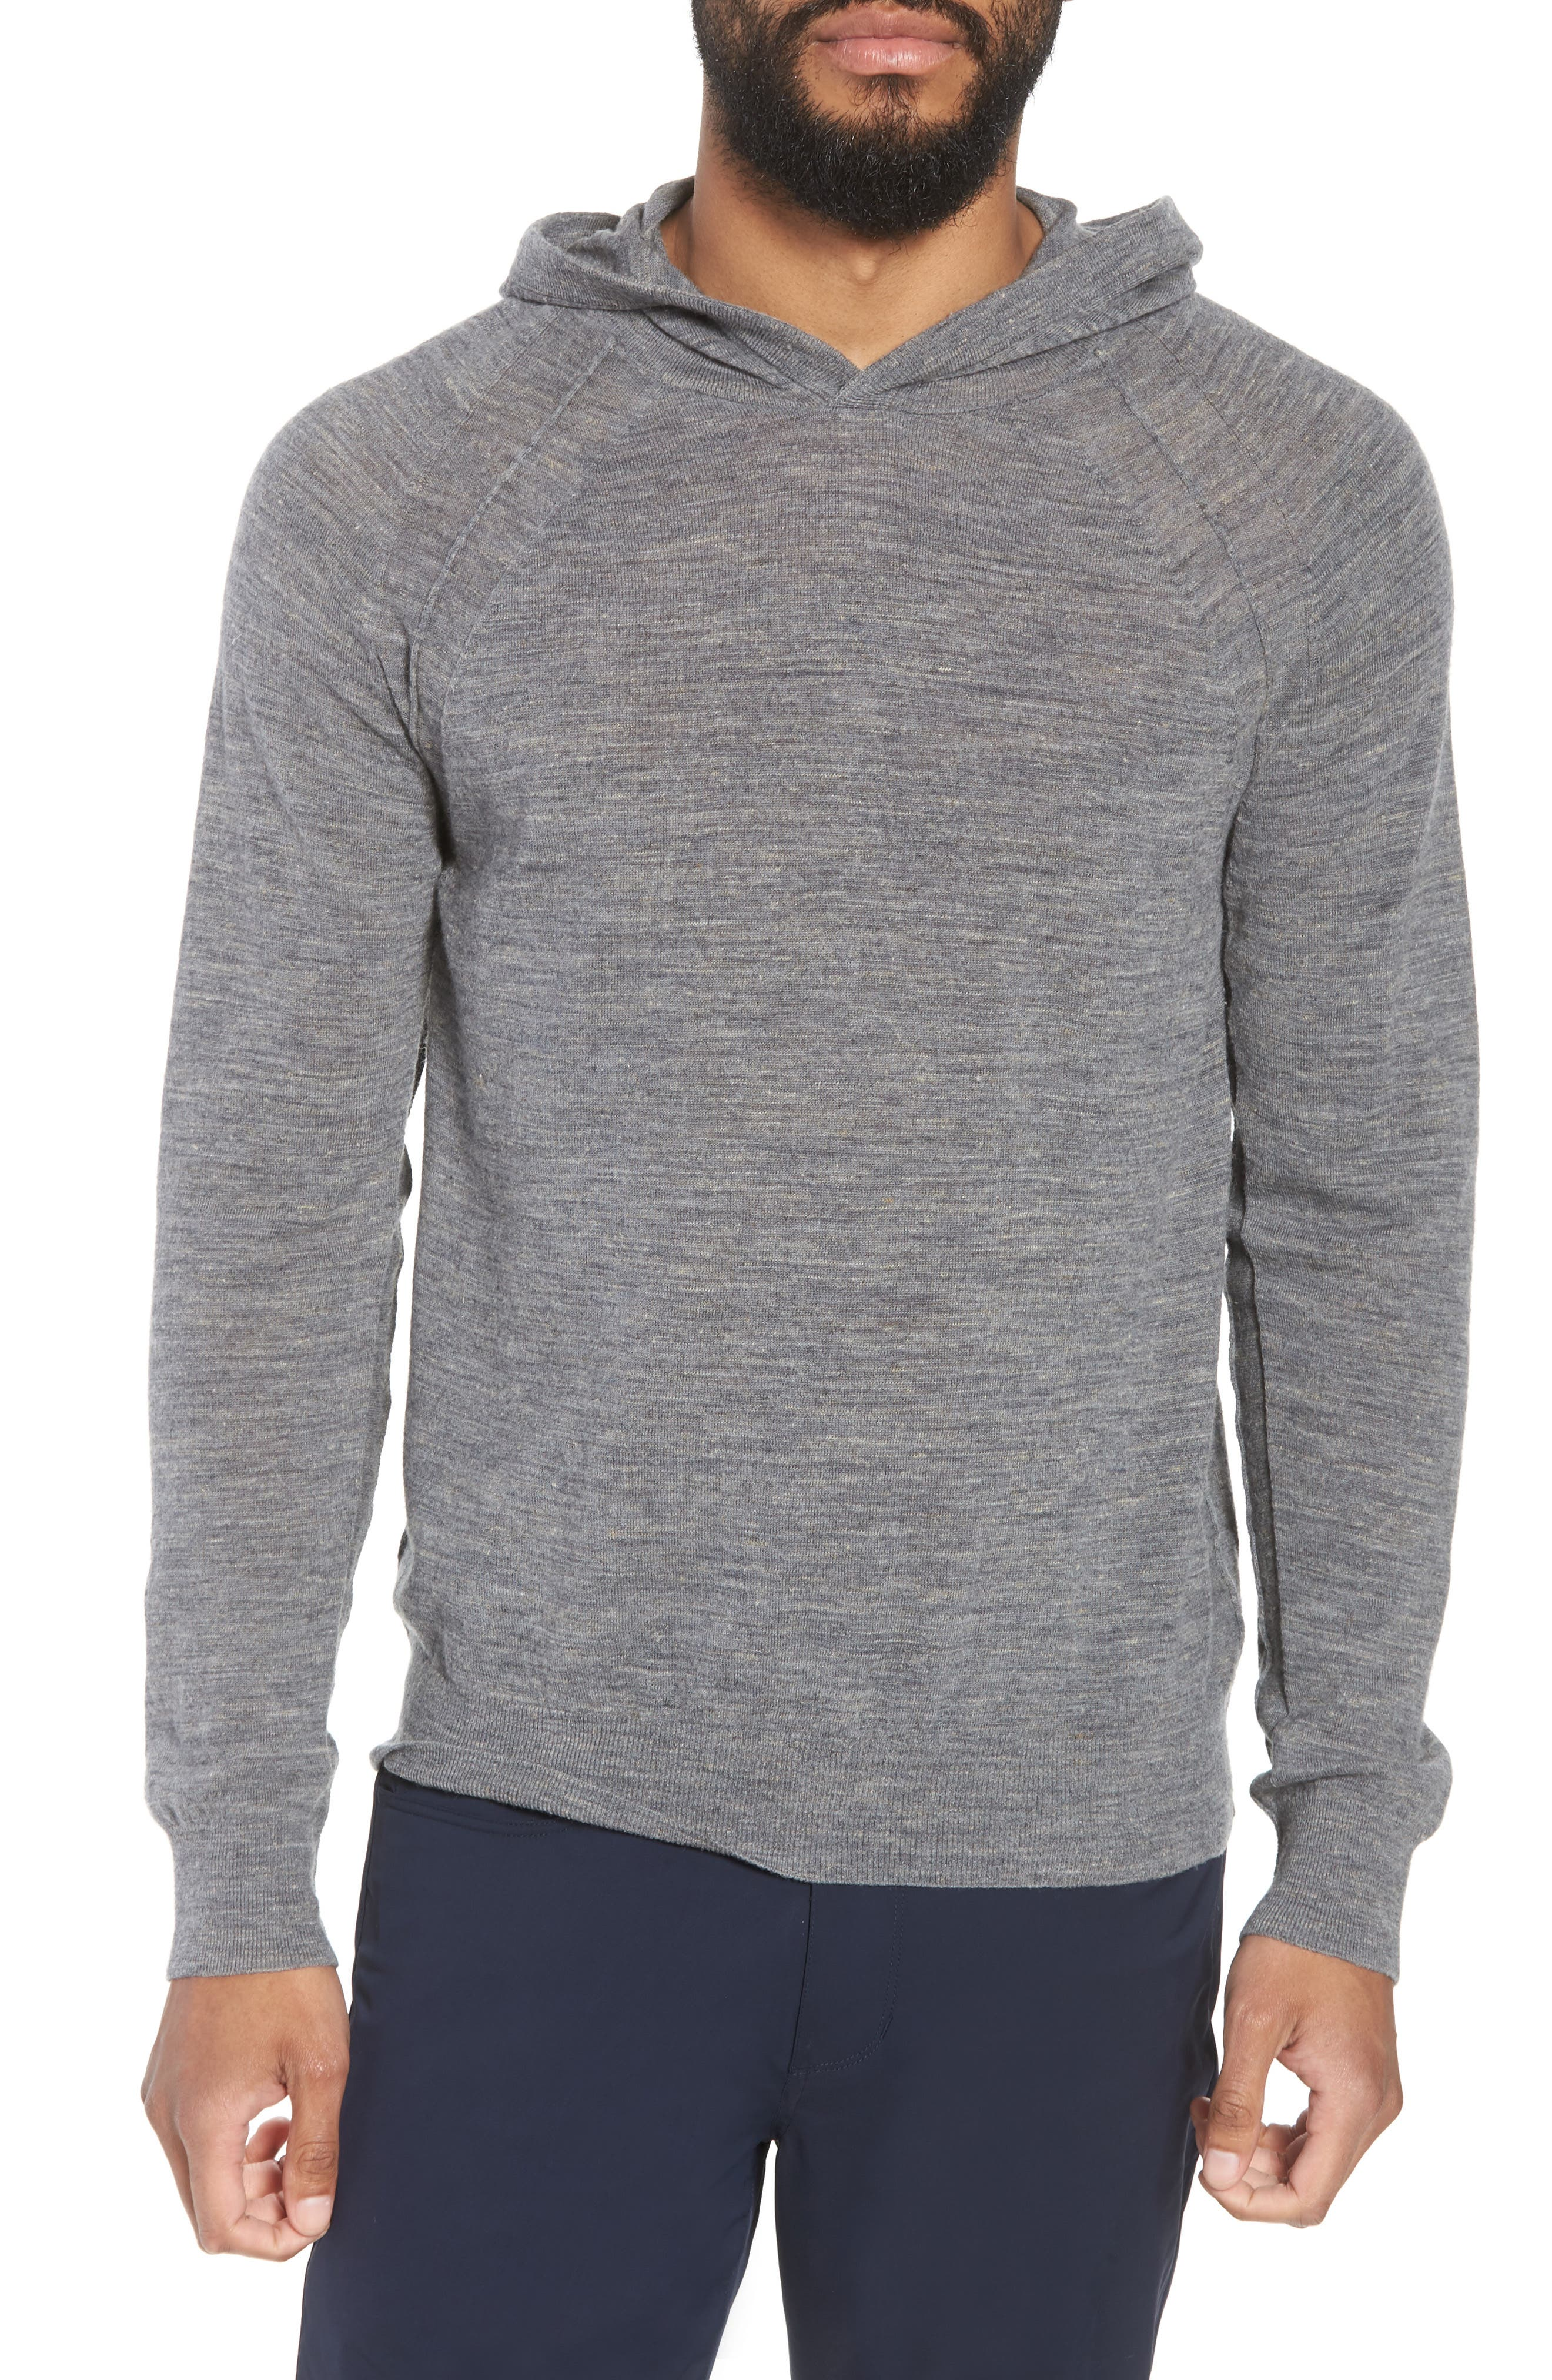 Long Sleeve Pullover Hoodie,                             Main thumbnail 1, color,                             070